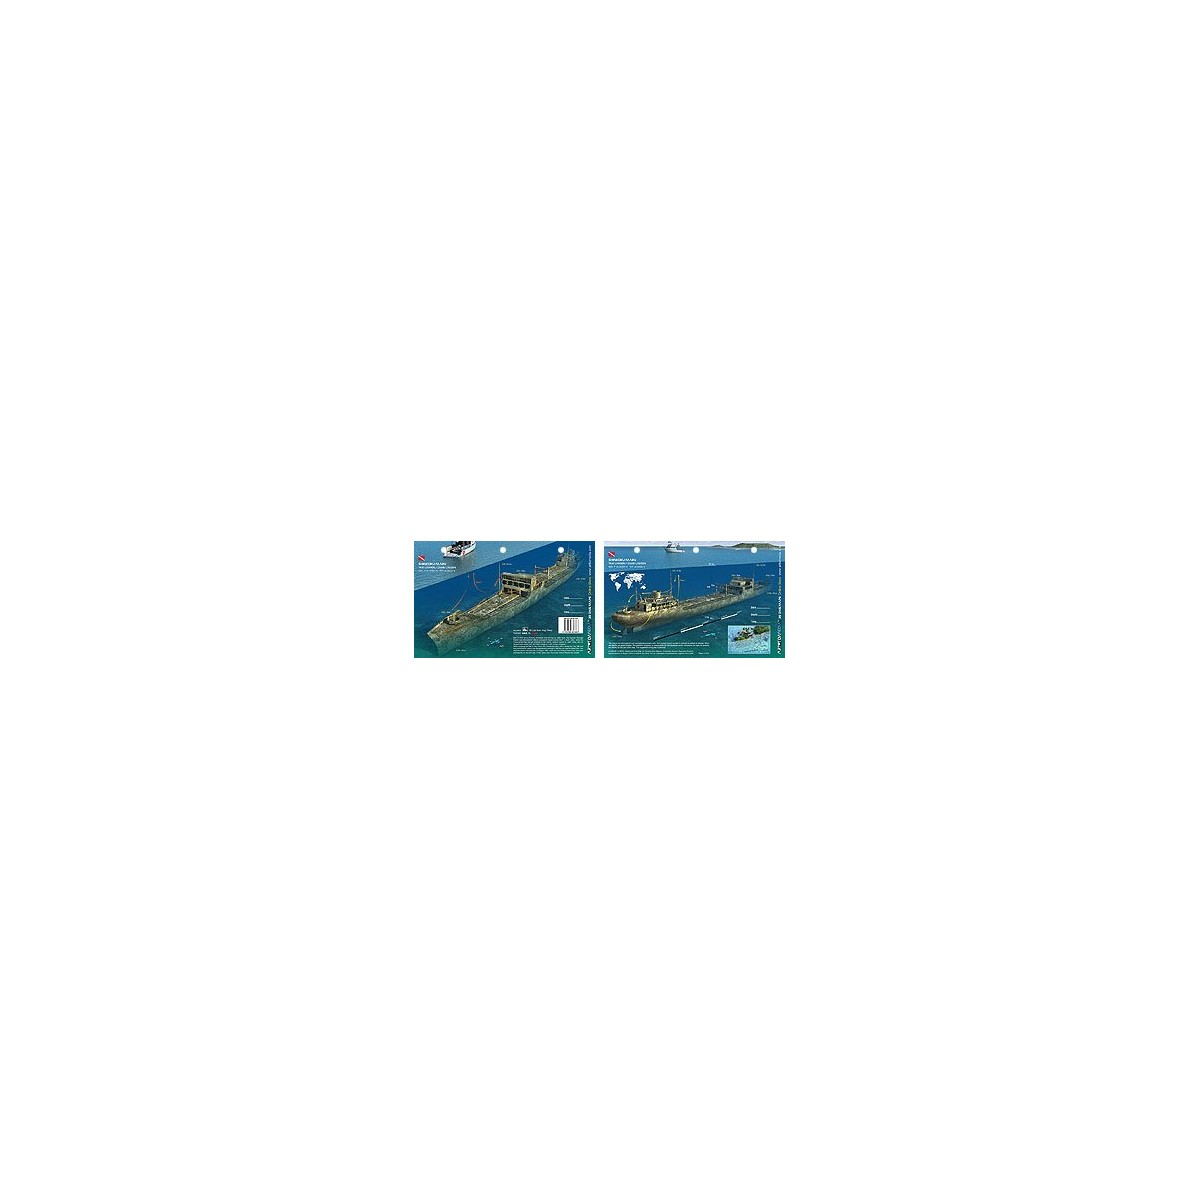 Shinkoku in Truk Lagoon, Micronesia (8.5 x 5.5 Inches) (21.6 x 15cm) - New Art to Media Underwater Waterproof 3D Dive Site Map